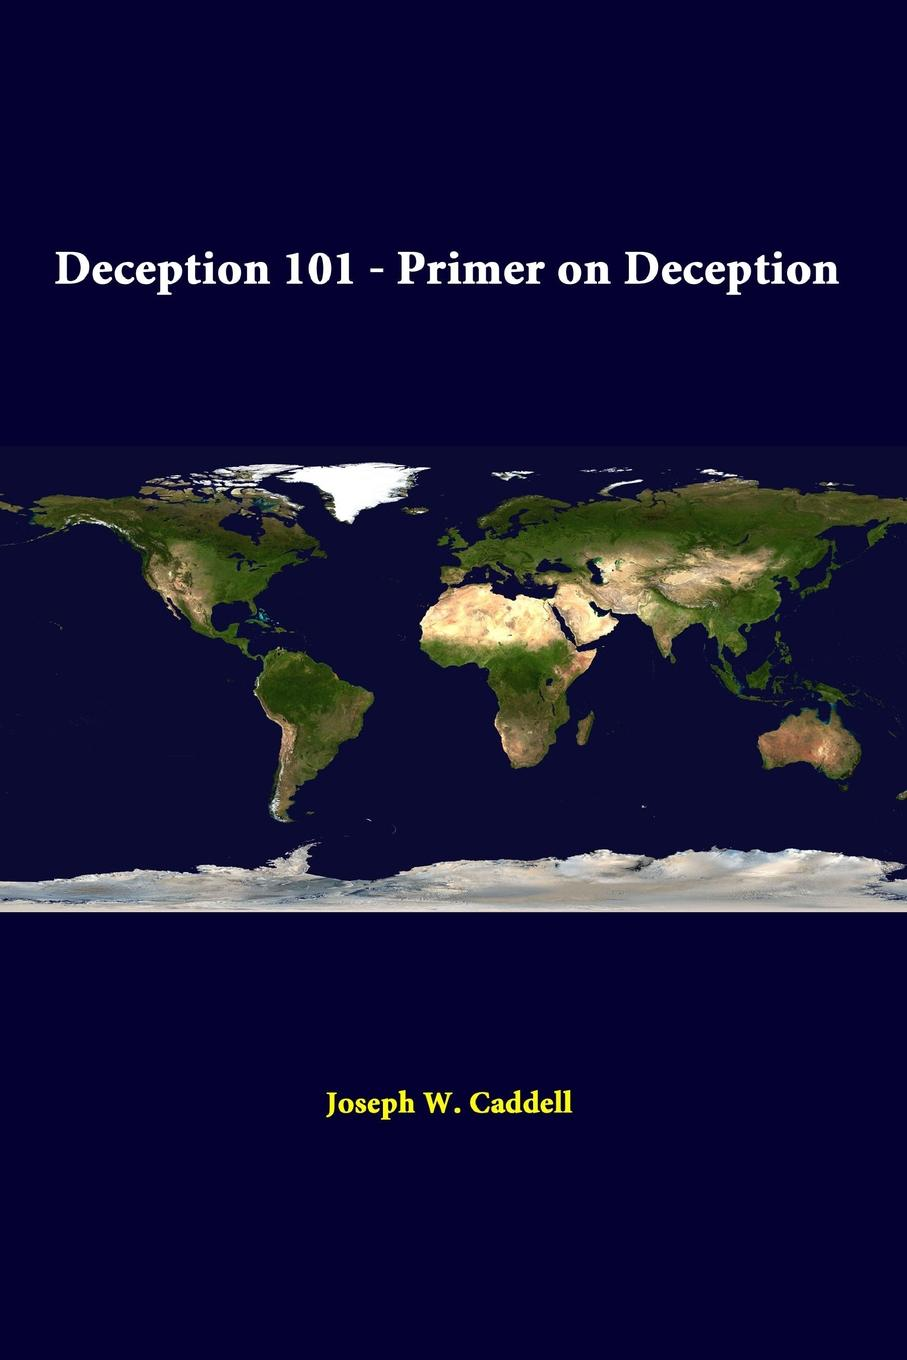 Joseph W. Caddell, Strategic Studies Institute Deception 101 - Primer On Deception цена и фото